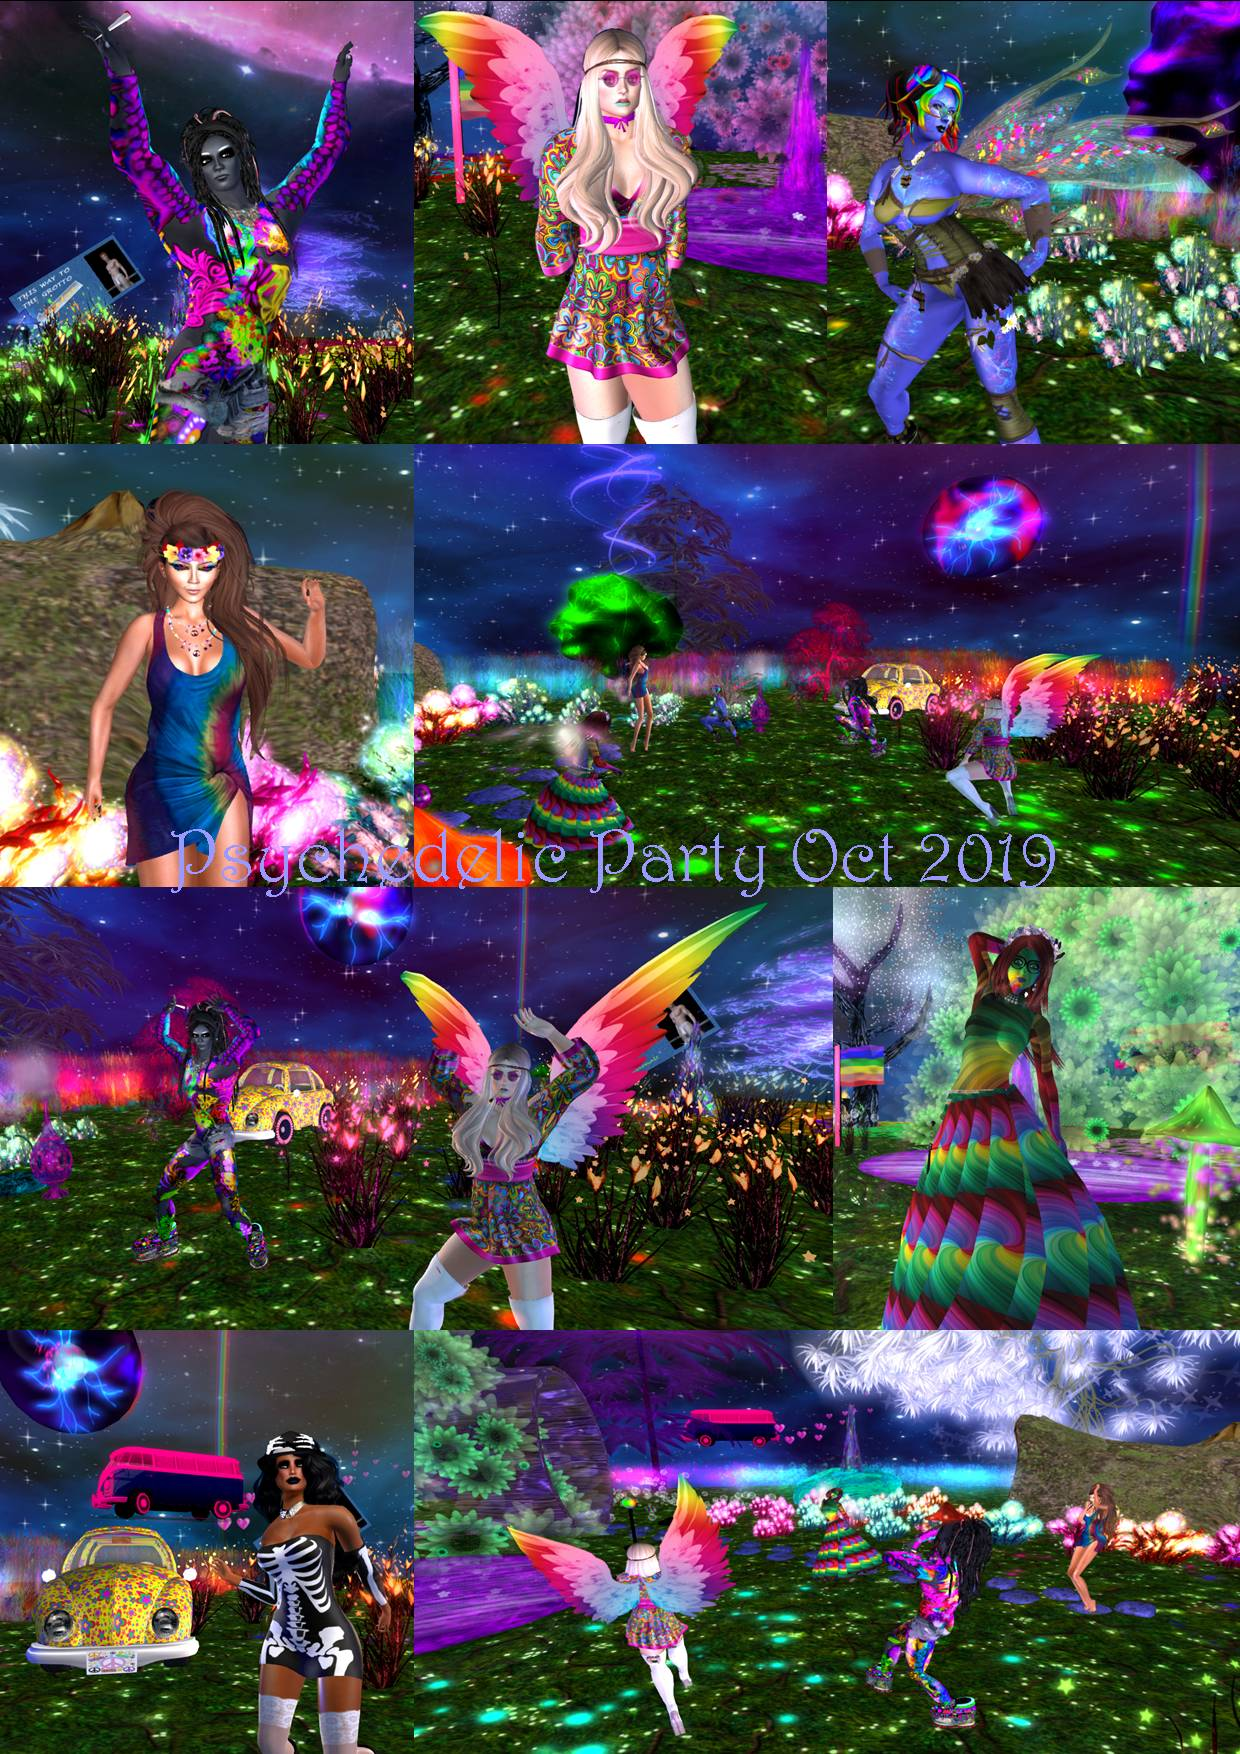 PSYCHEDELIC PARTY COLLAGE OCT 2019